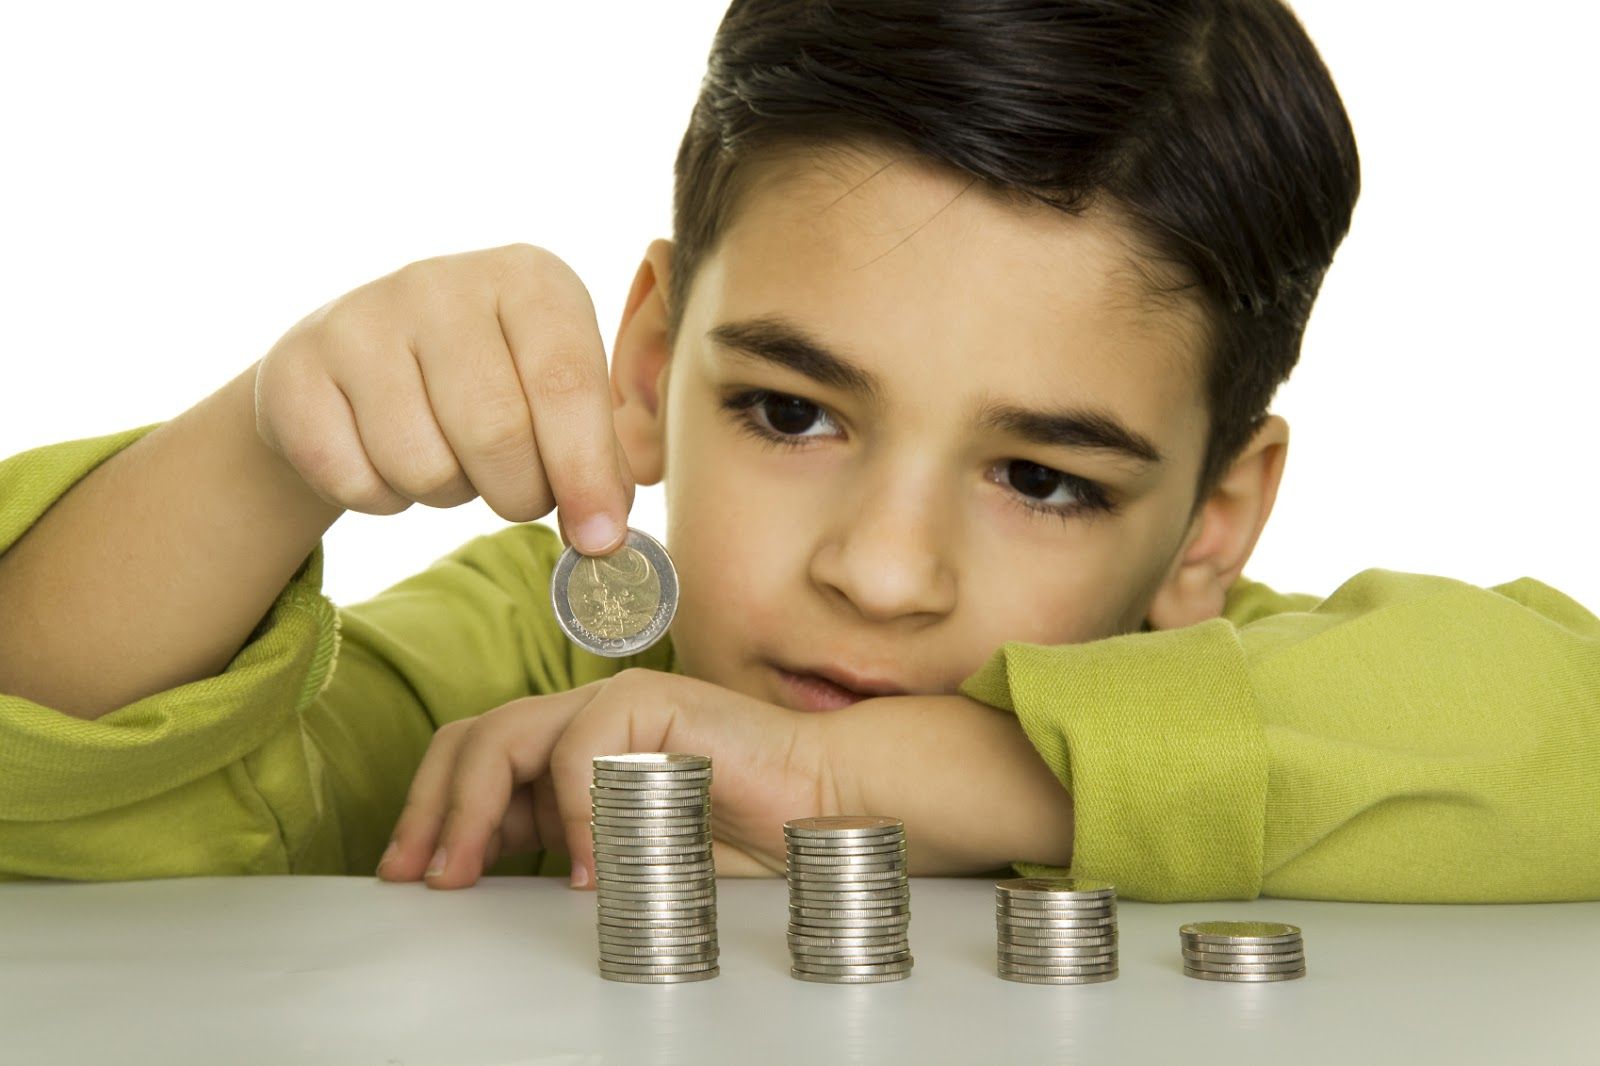 disadvantages of pocket money given to children Disadvantages of giving pocket money to children pocket money itself is neither good nor bad however, how we use it makes it good or bad i strongly believe before giving pocket money to children, we must teach them the value of money along with the wisdom of using it wisely and judiciously.